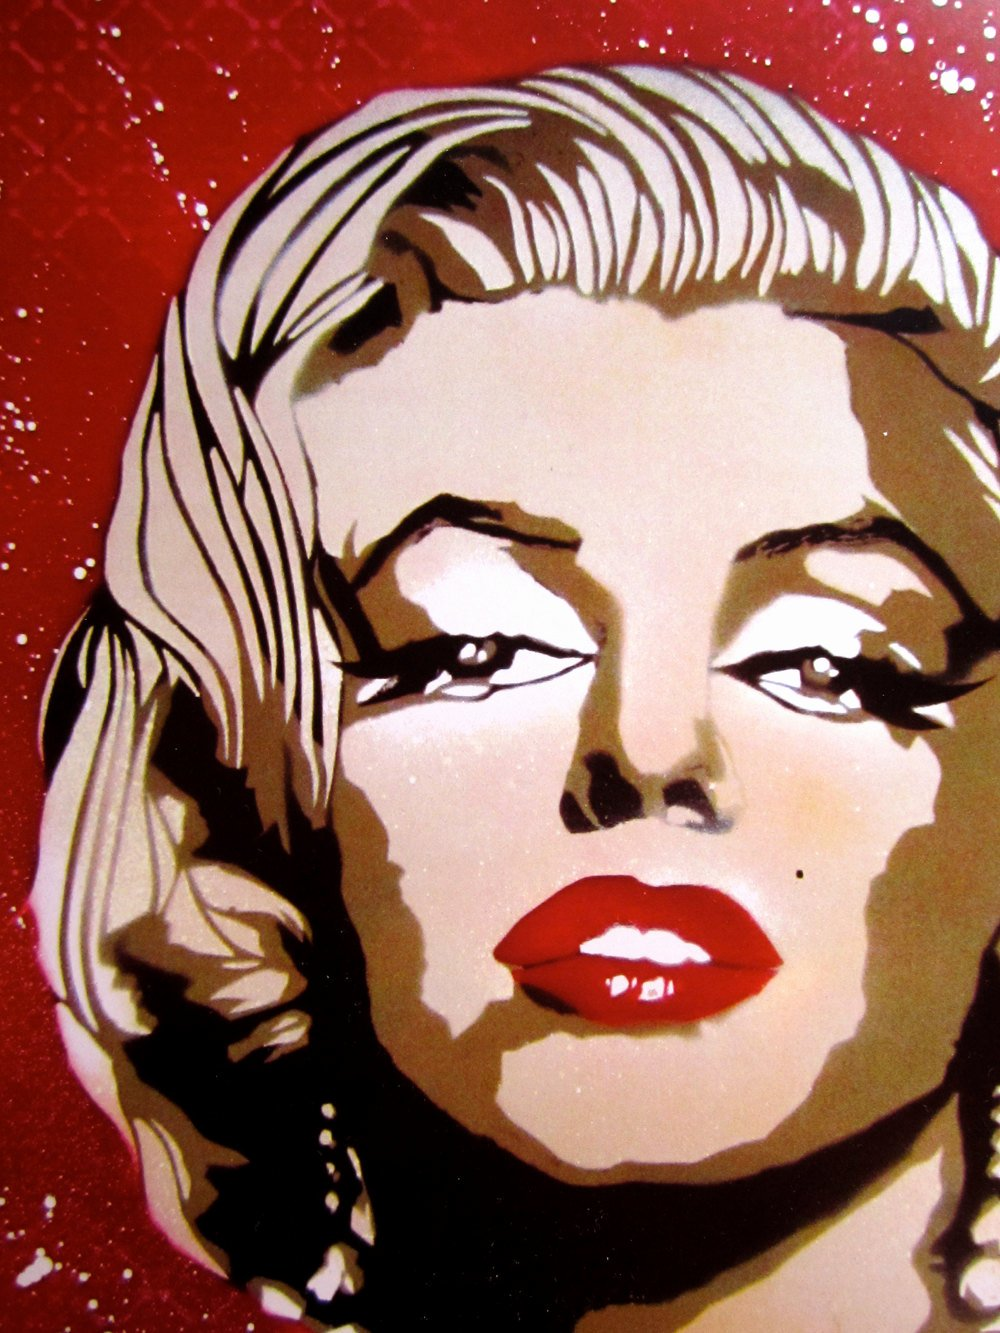 Marilyn Monroe Stencil Art Awesome Marilyn Monroe Stencil Art Print